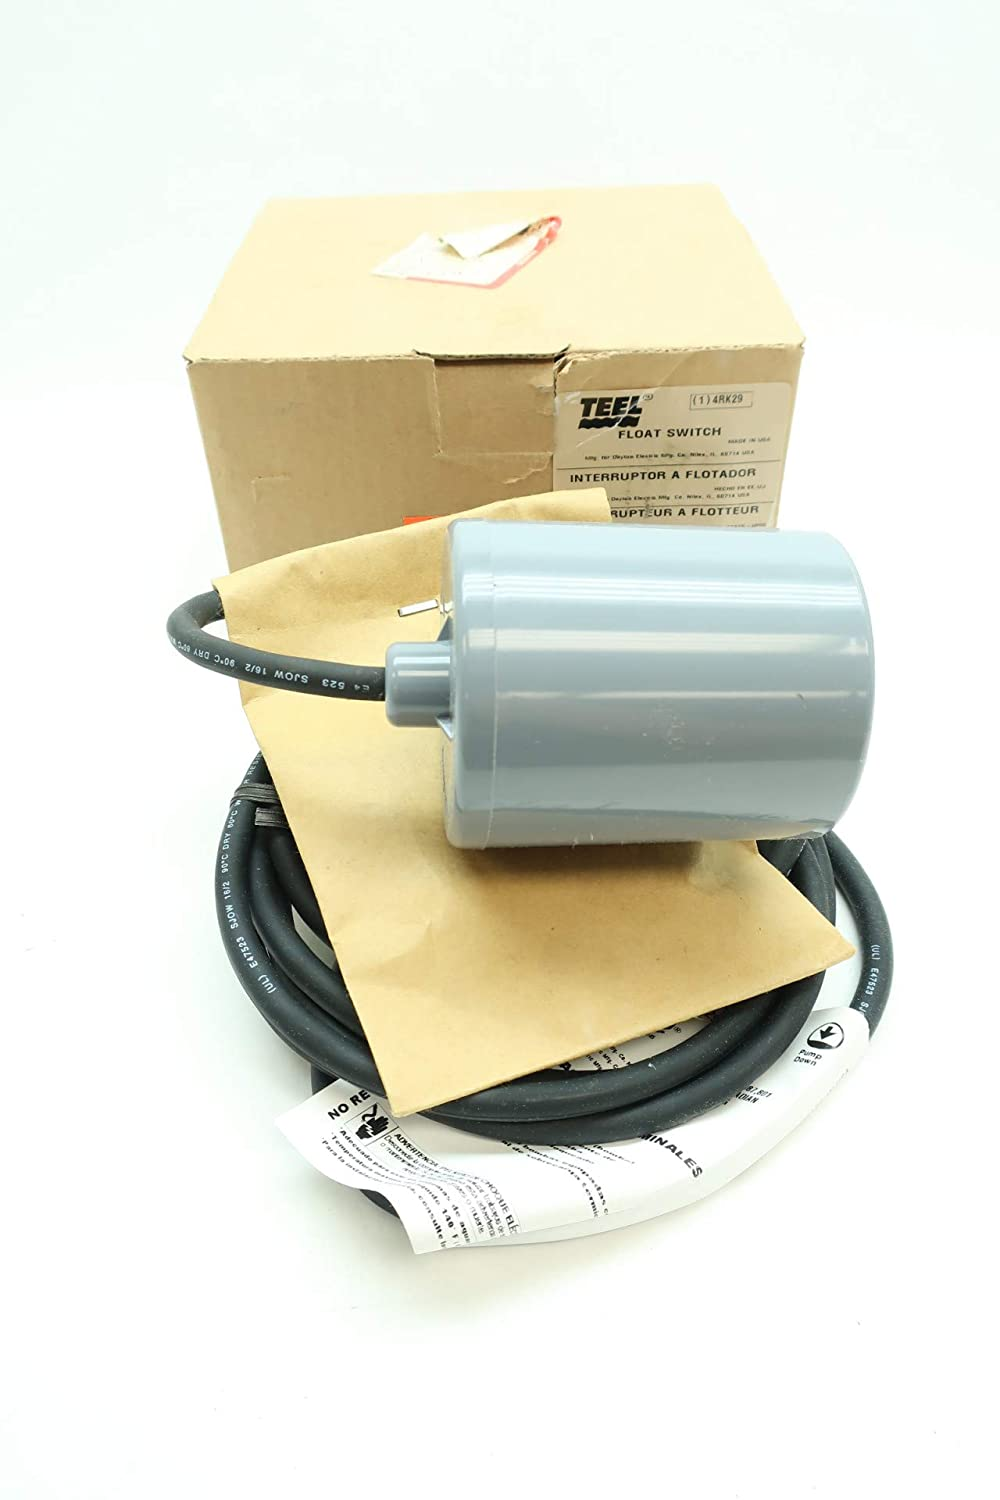 TEEL 4RK29 10PMD1WP Float Switch D645025: Amazon.com: Industrial & Scientific